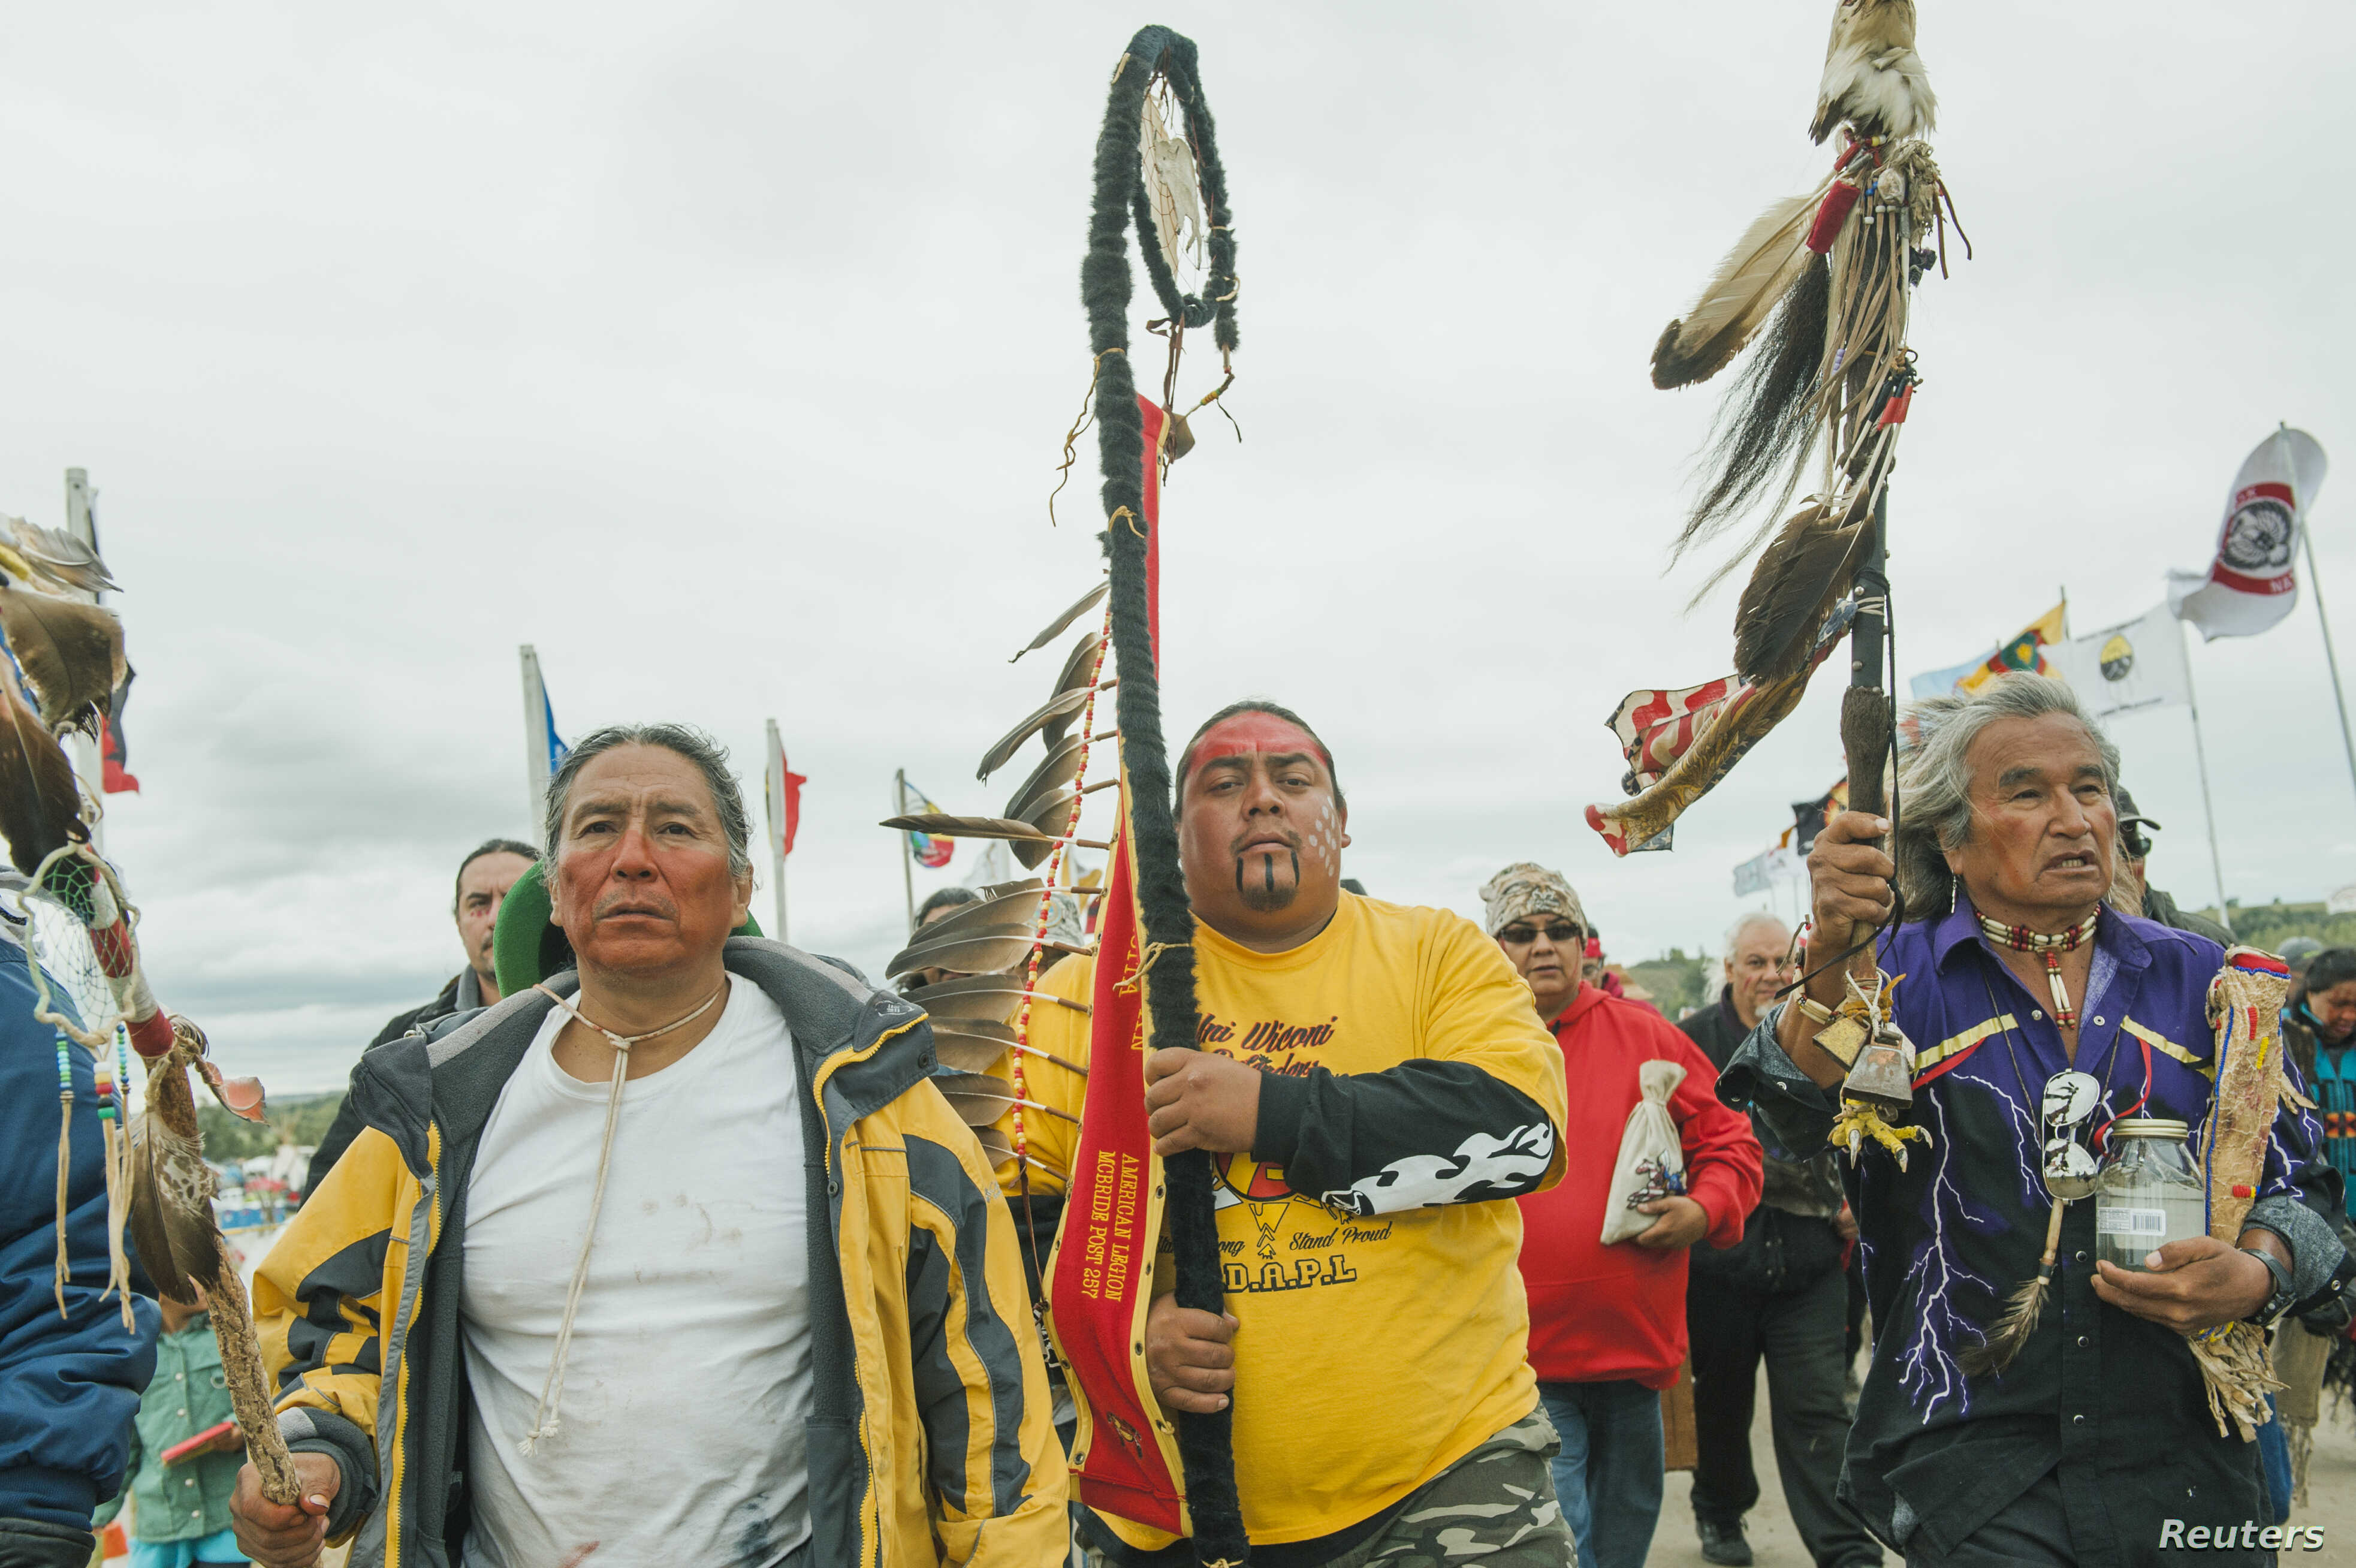 Protesters demonstrate against the Energy Transfer Partners' Dakota Access oil pipeline near the Standing Rock Sioux reservation in Cannon Ball, North Dakota, Sept. 9, 2016.